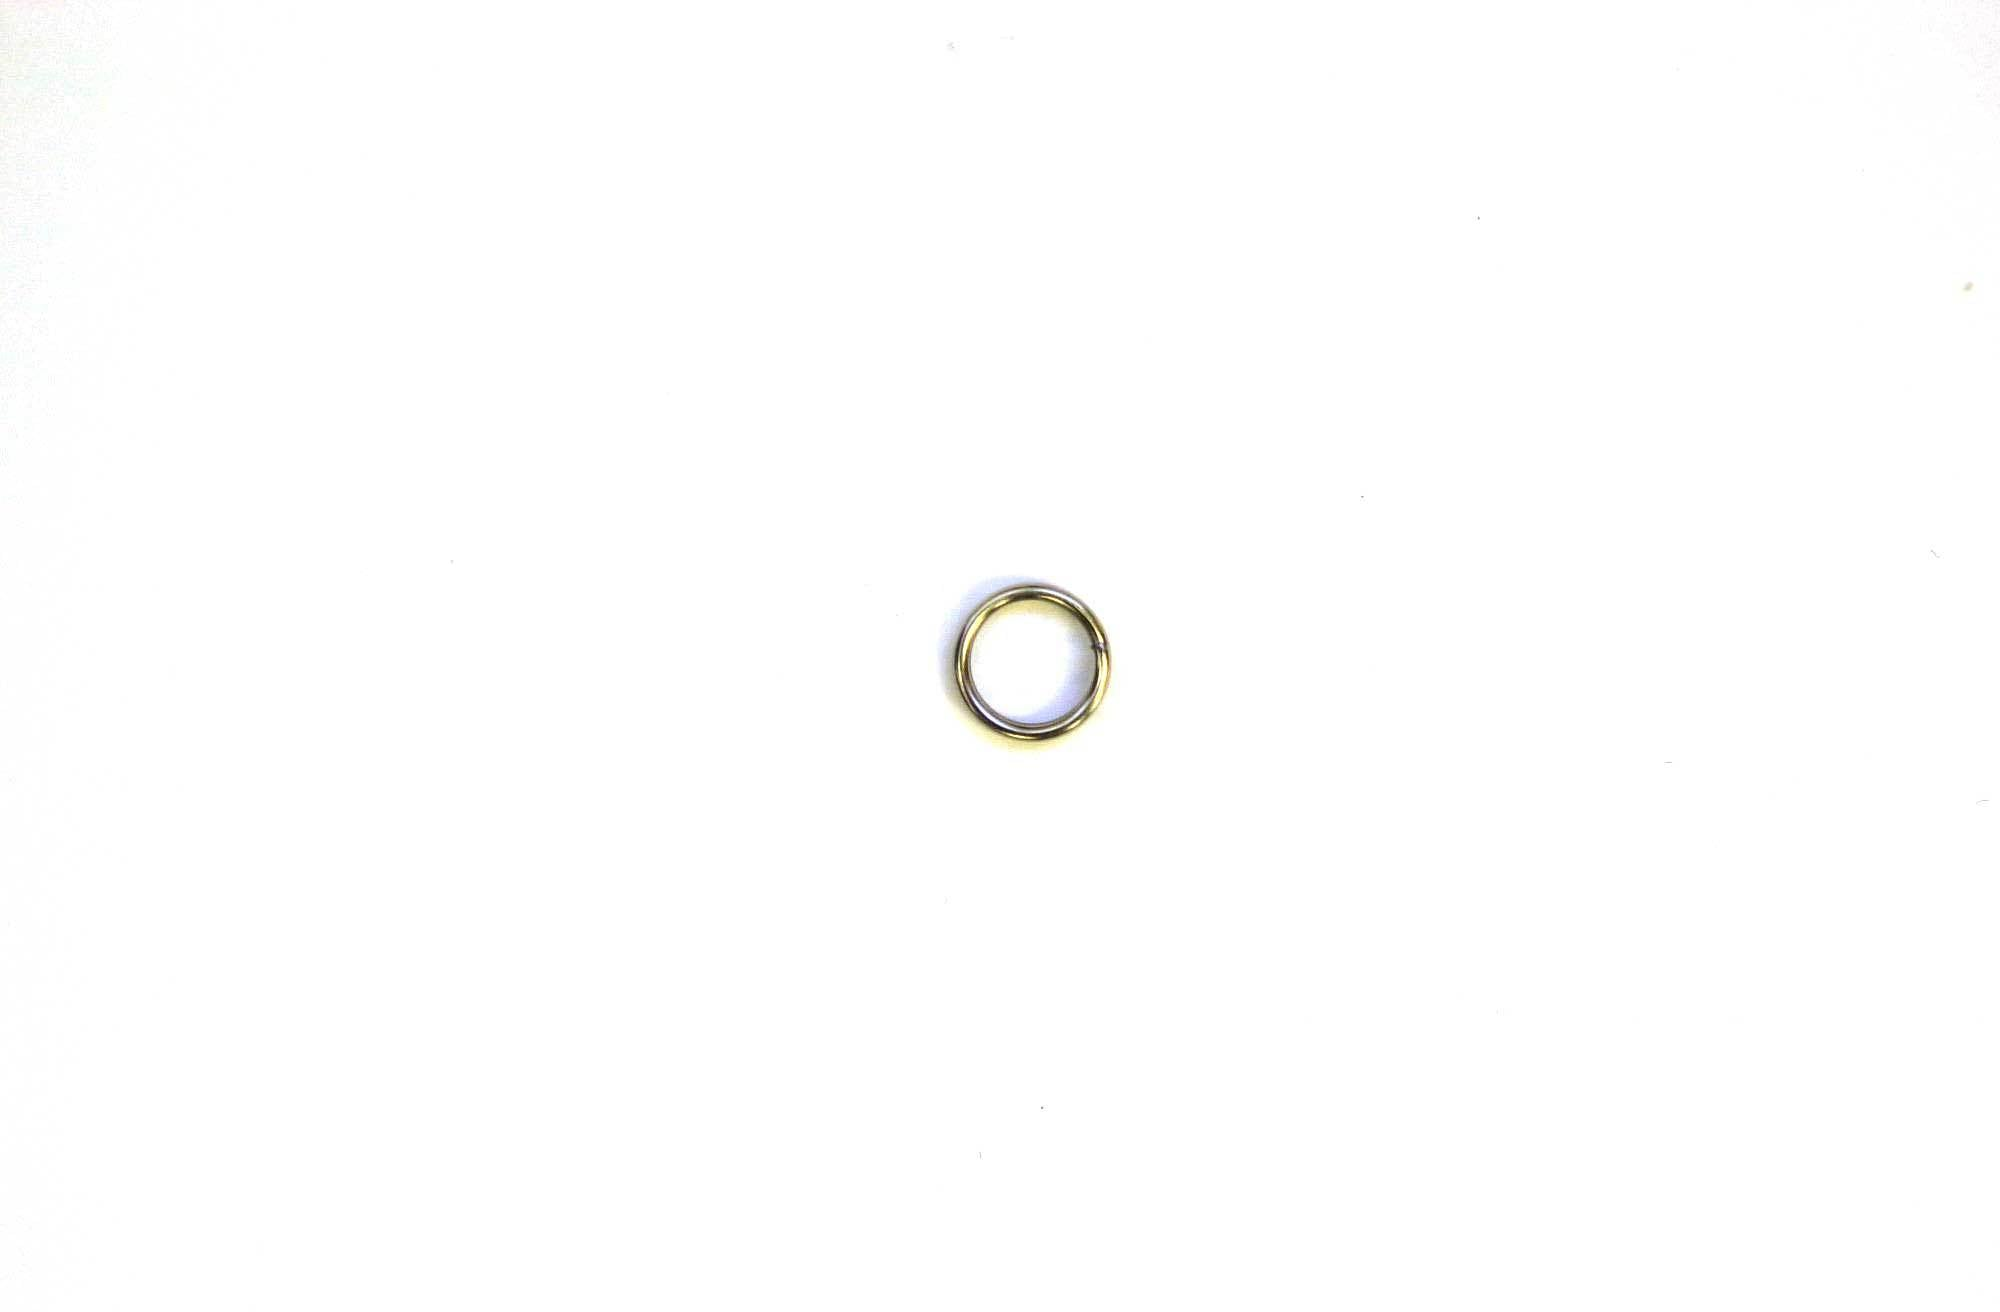 Eagle Claw Split Rings Nickle 5ct Size 6